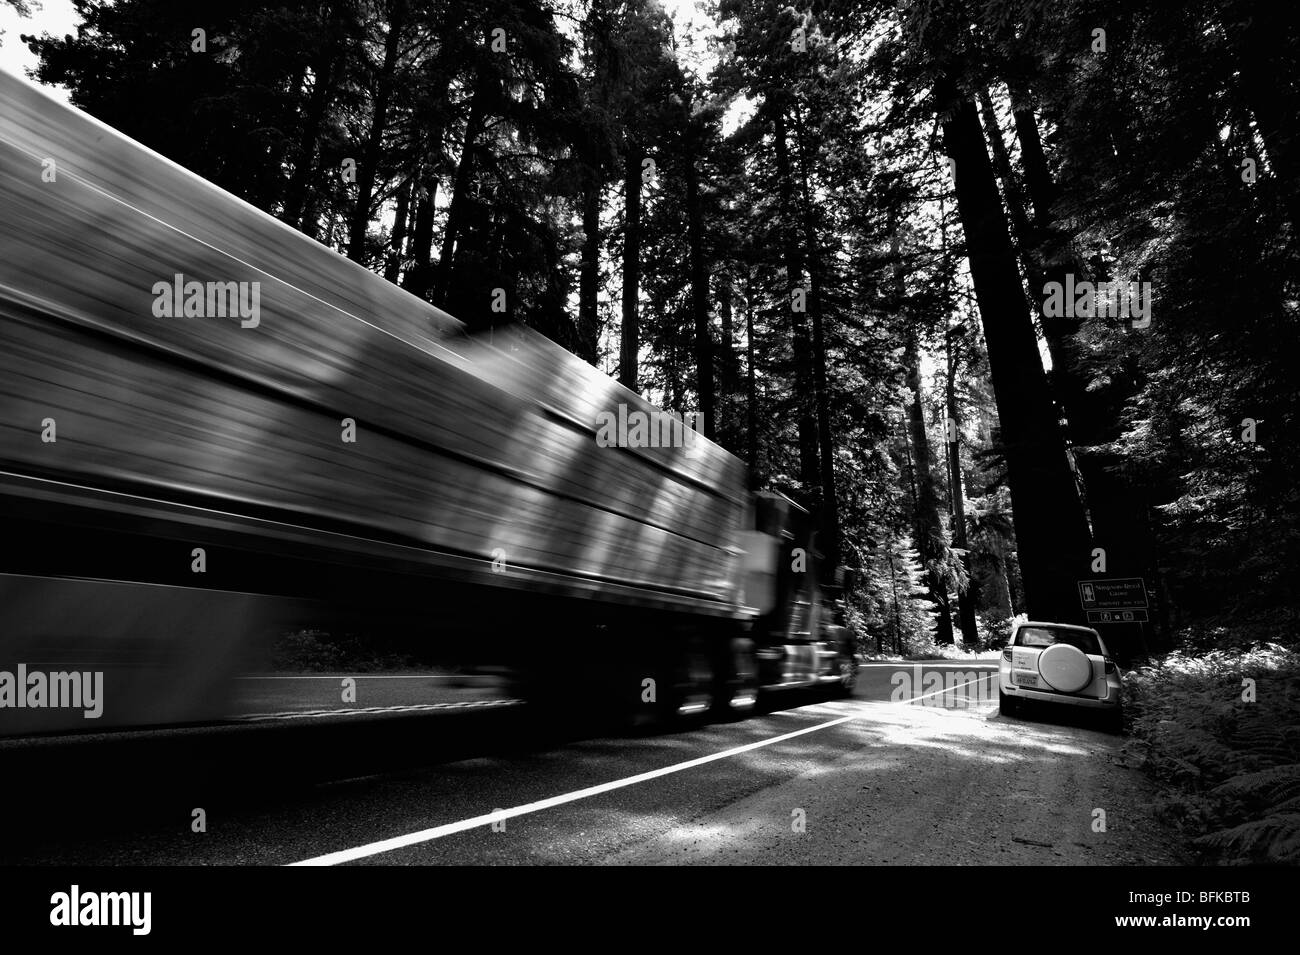 Truck overtaking a parked car in the coastal Redwood forests of north California, USA - Stock Image